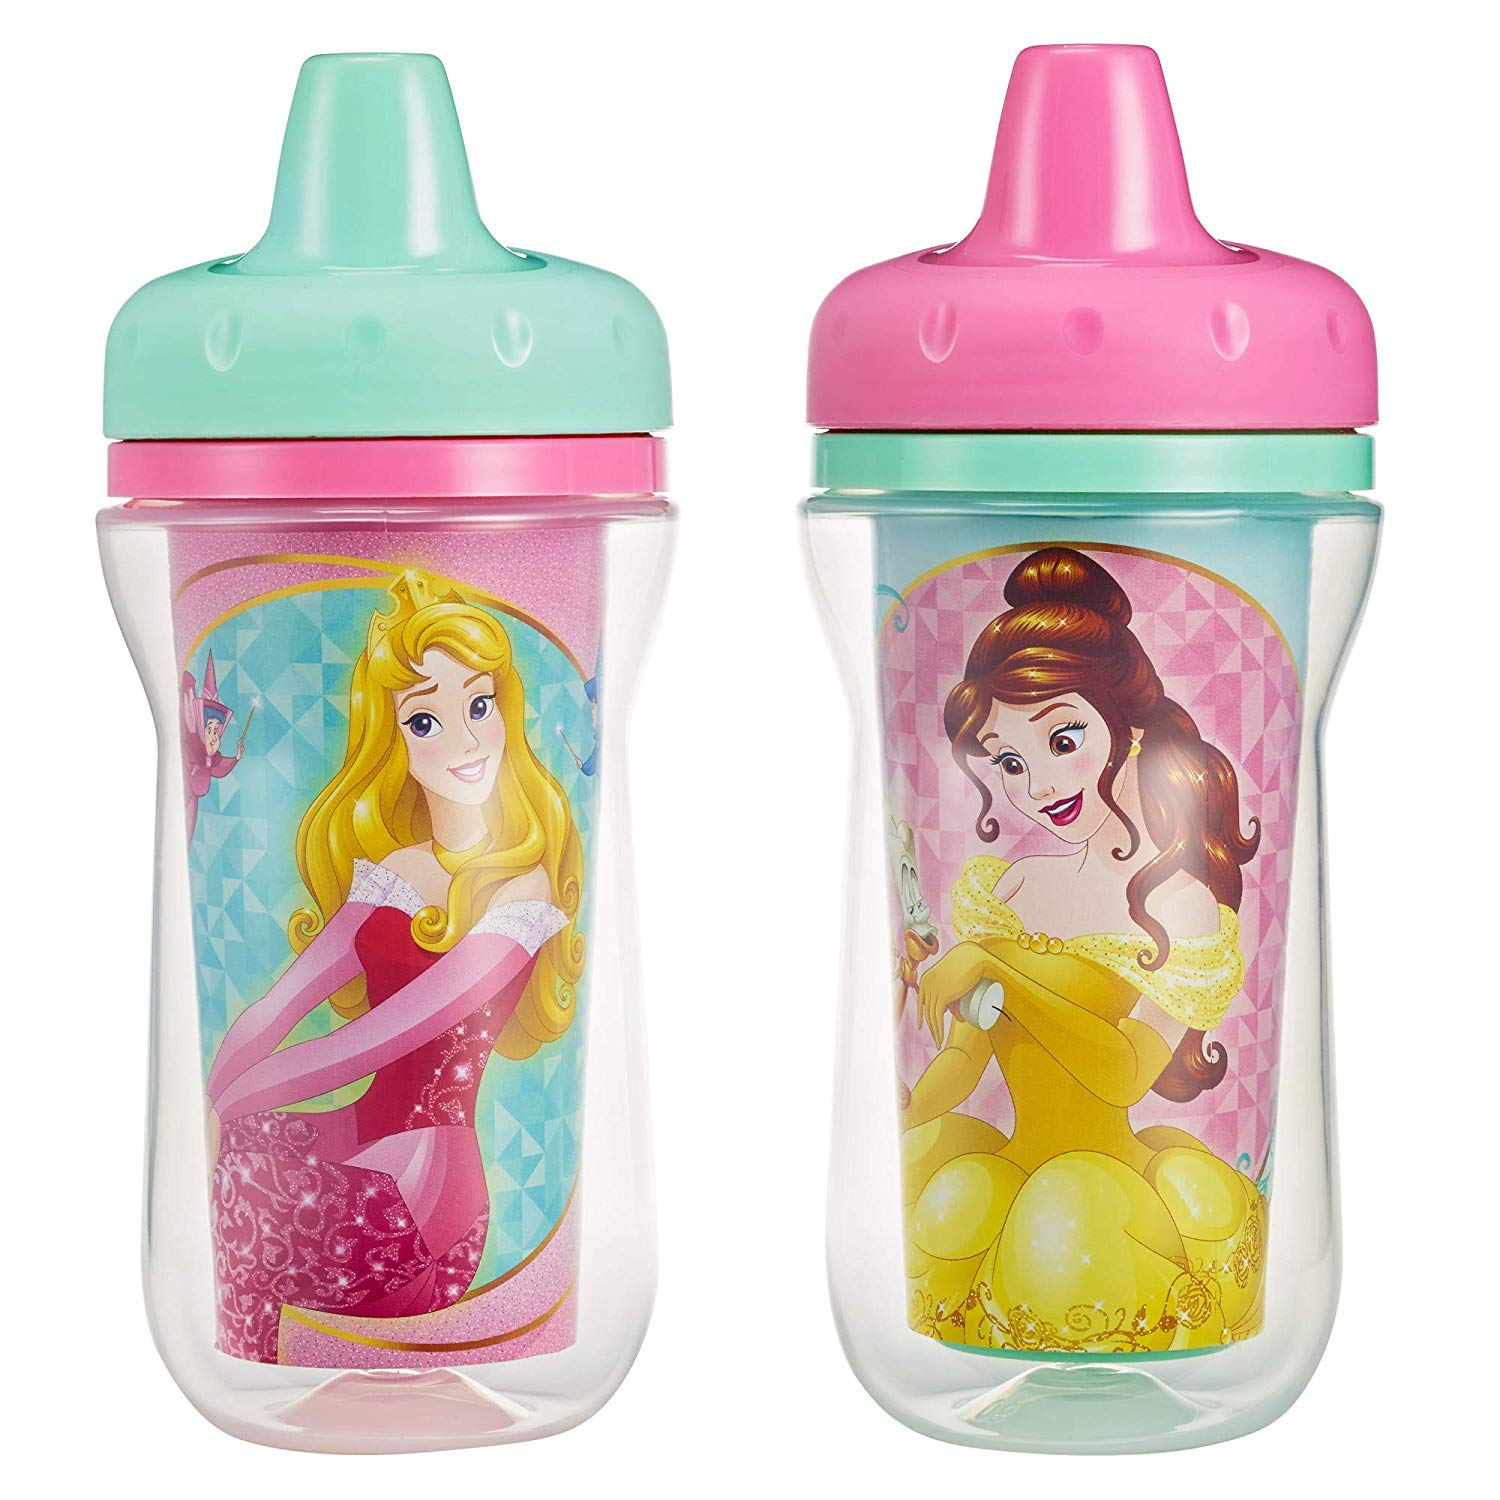 Baby girl sippy cup clipart png free library The First Years Insulated Sippy Cups, Disney Princess, 9 Ounce (Pack of 2) png free library